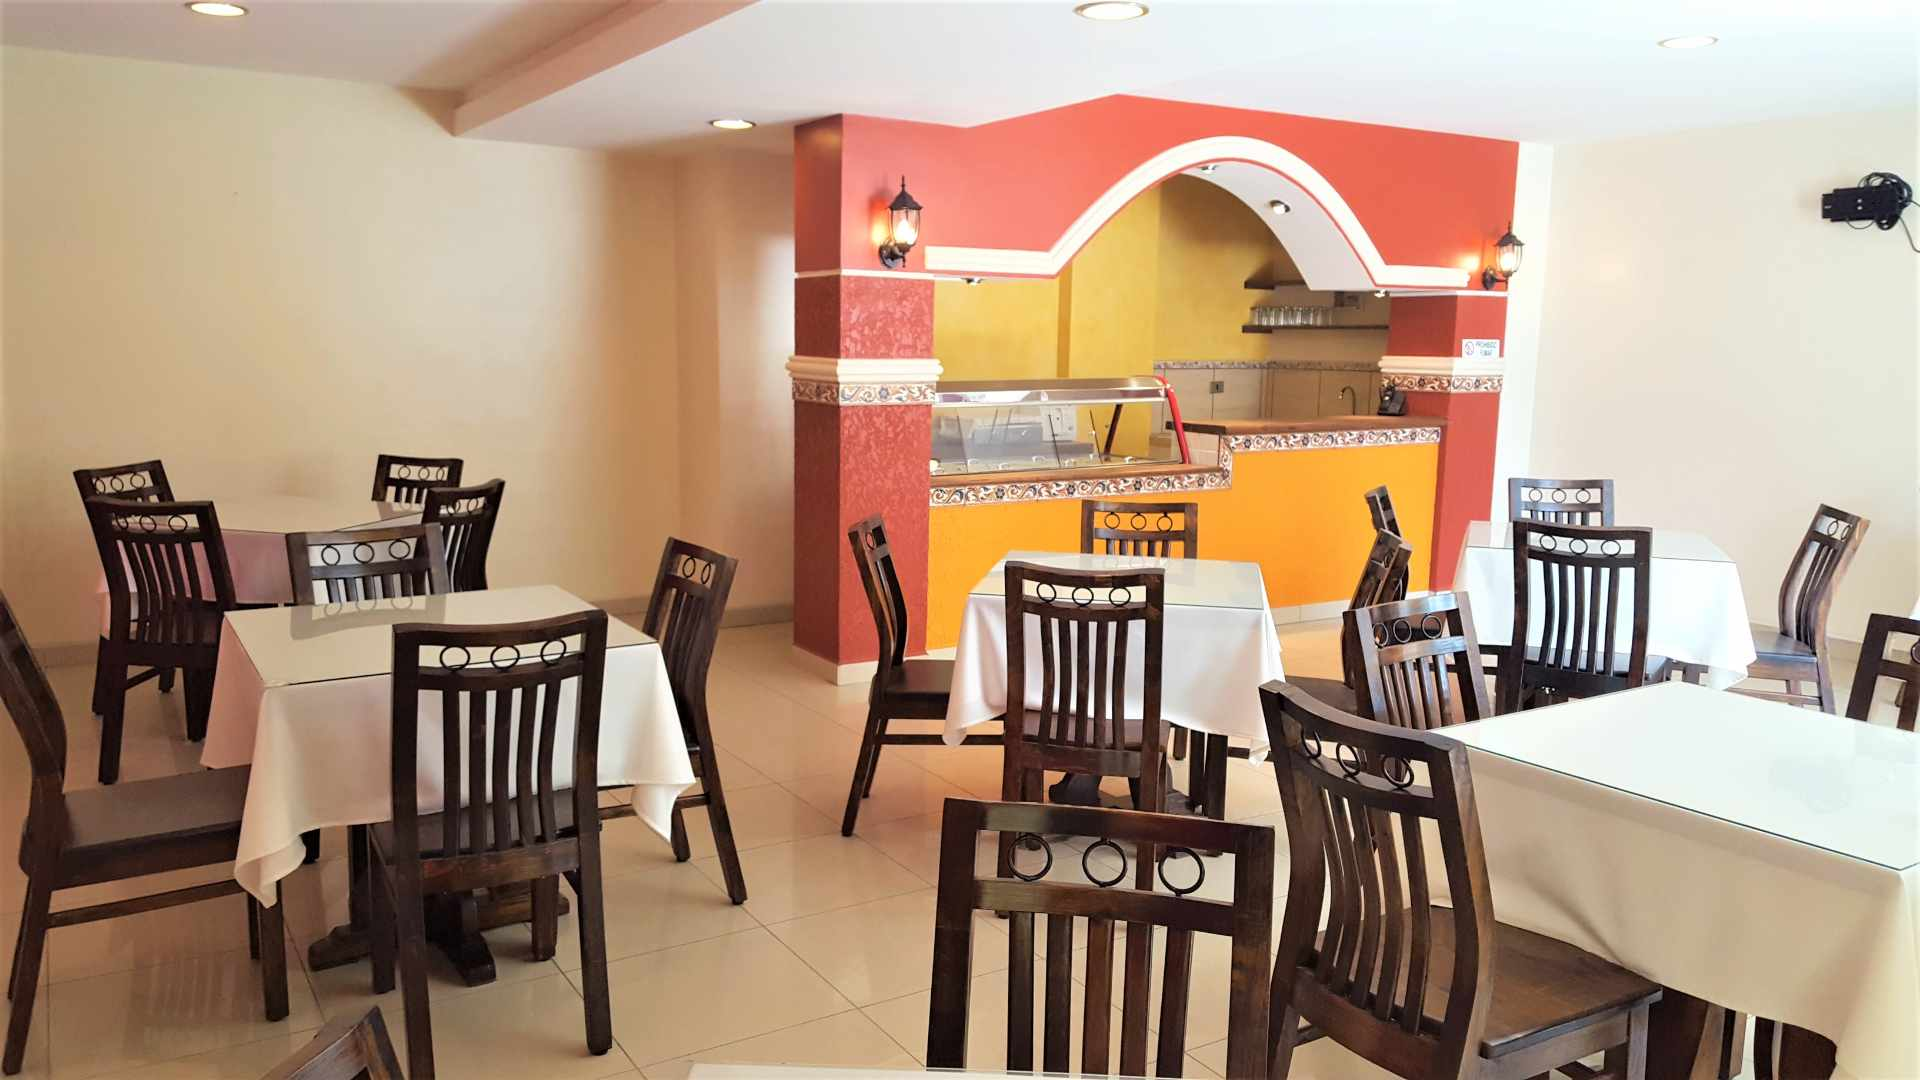 Local comercial en Venta $us 82.000.- LOCAL COMERCIAL IDEAL PARA RESTAURANTE - ZONA CALA CALA. CEL.: 799-98200 Foto 1